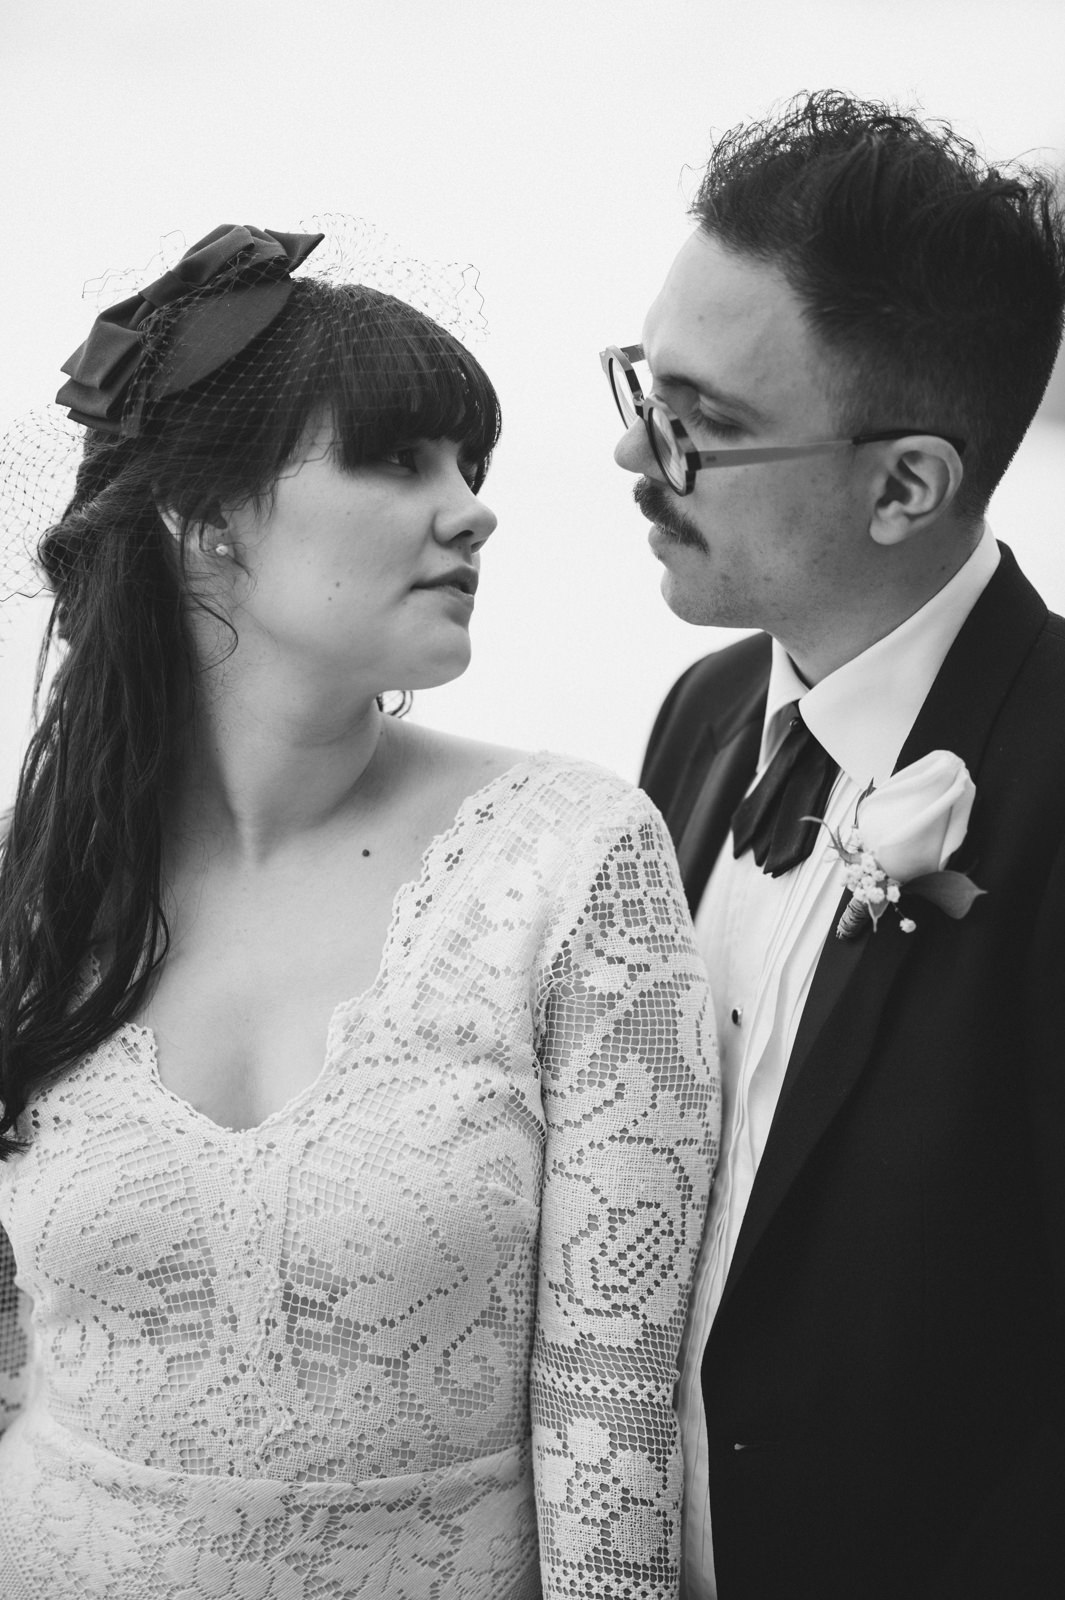 black and white portrait of the bride and the groom looking at each other